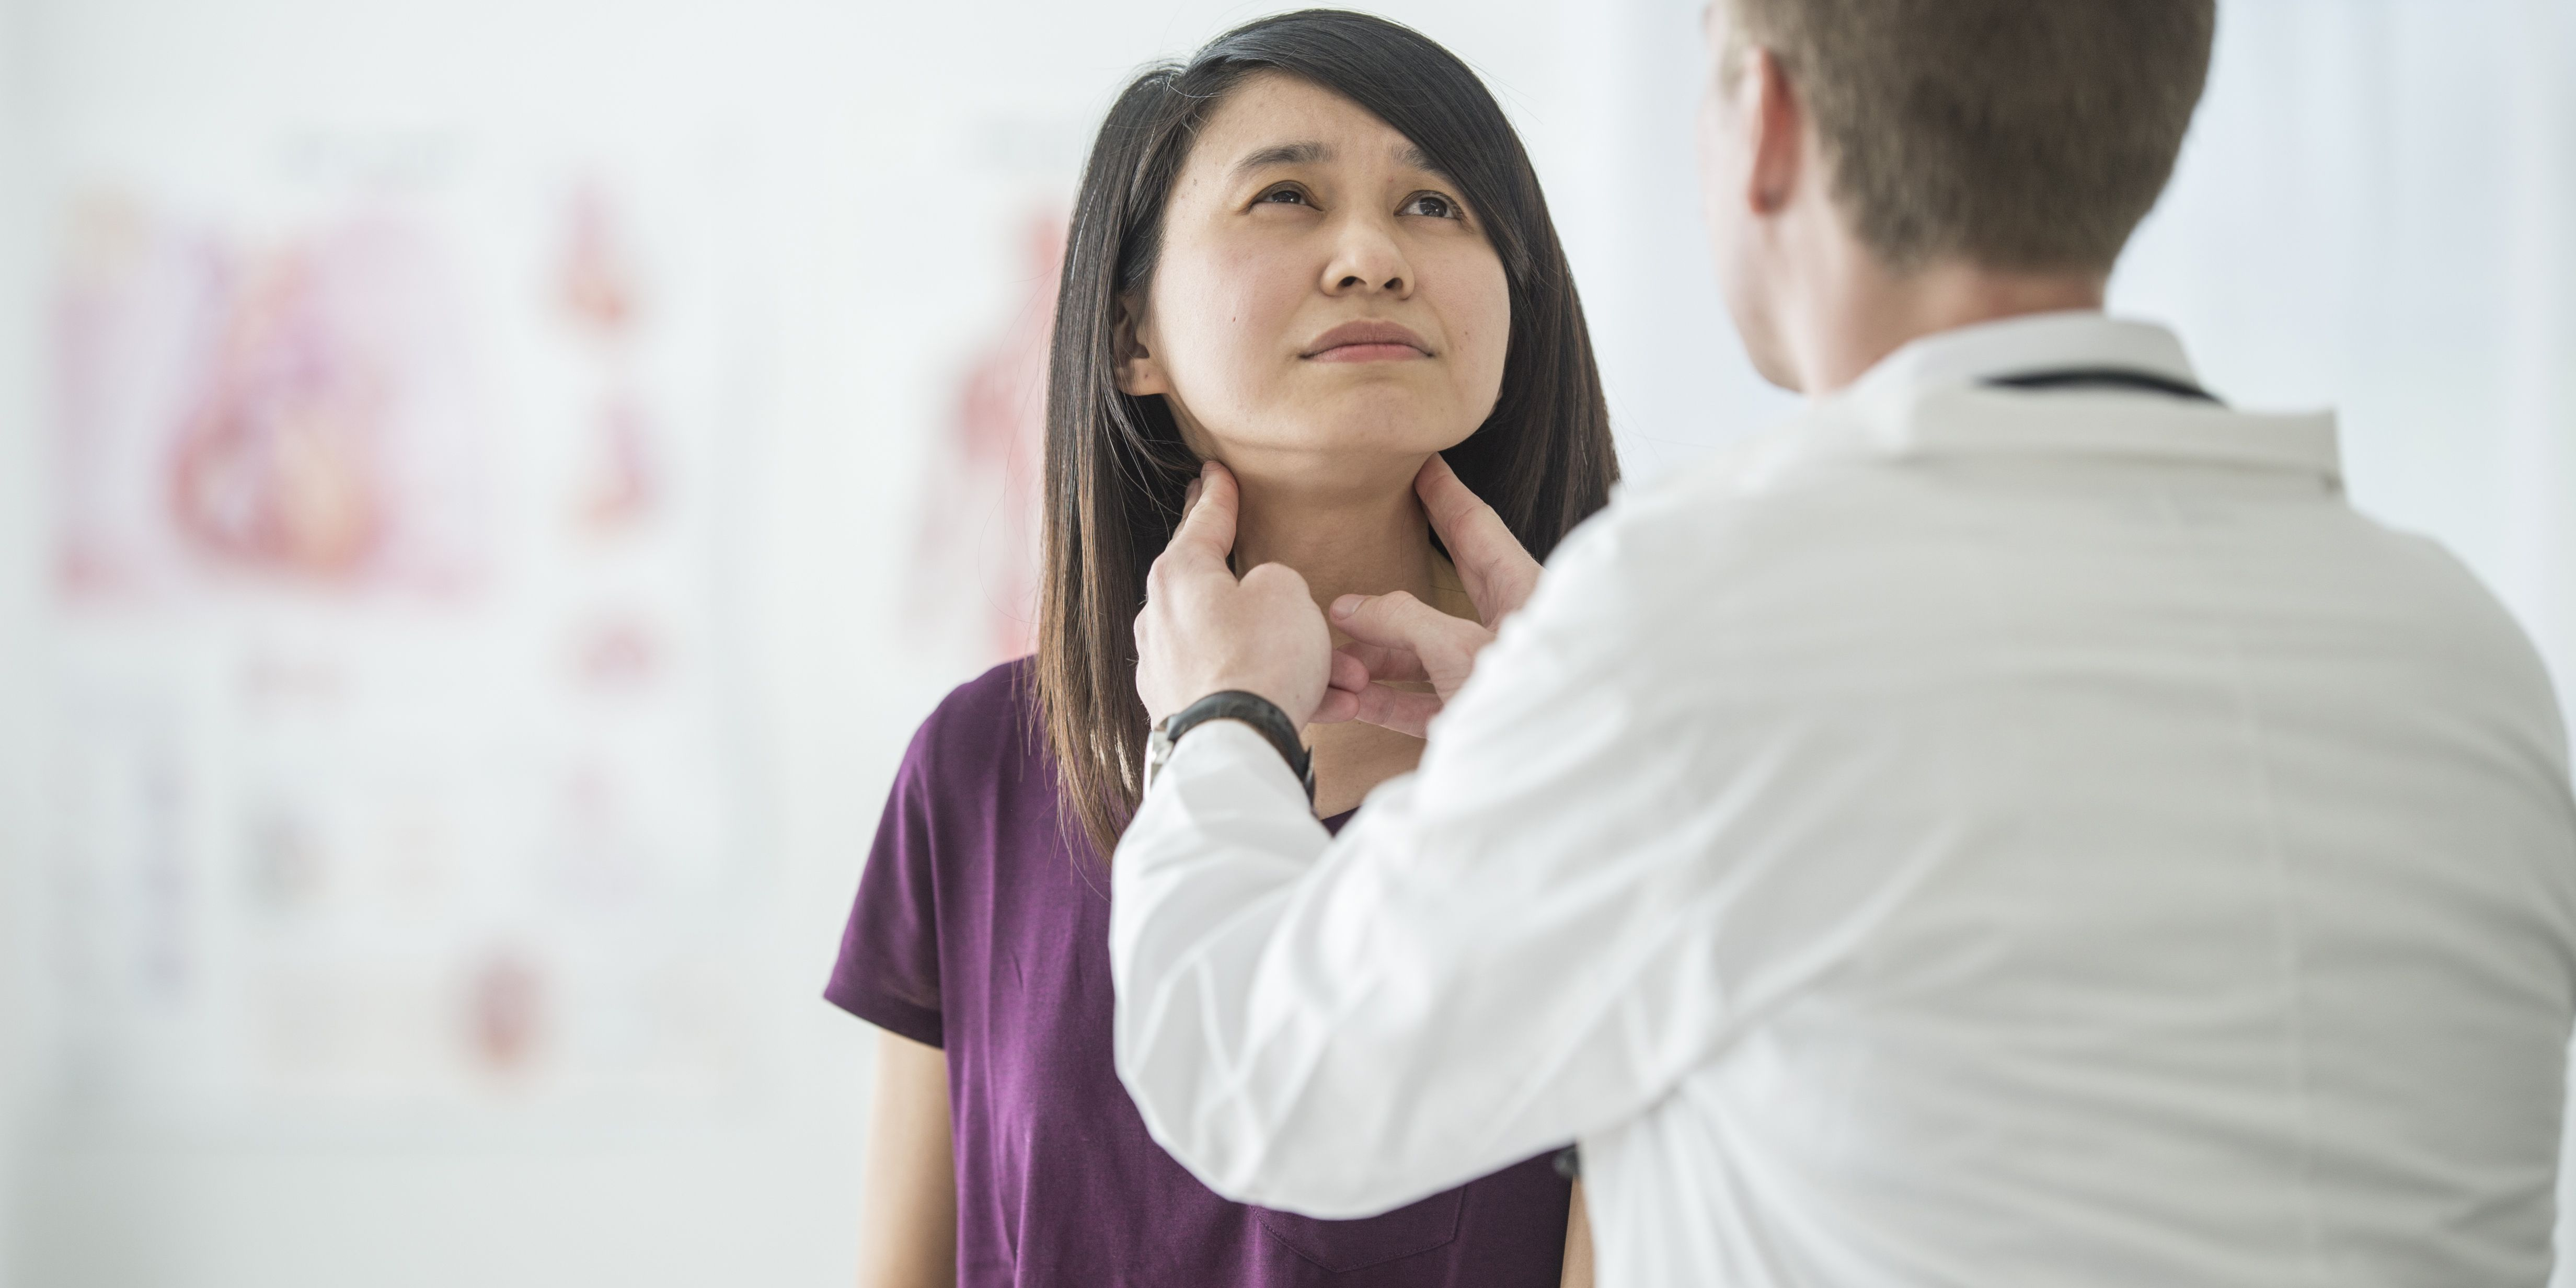 "<p>The butterfly-shaped gland, which lives in the base of your neck, is frequently associated with everything from fatigue to excess pounds –<span class=""redactor-invisible-space""> </span>for good reason. 'Thyroid hormones affect nearly every organ and process in the body,' says Angela Leung, M.D., assistant clinical professor of medicine in UCLA's Division of Endocrinology. How it works: Thyroid-stimulating hormone (TSH), released by the brain's pituitary gland, tells the thyroid to produce and release thyroxine (<span data-verified=""redactor"" data-redactor-tag=""span"">T4</span>). You metabolis<span>e </span><span data-verified=""redactor"" data-redactor-tag=""span"" style=""background-color: initial;"">T4</span><span> into a more usable form, </span><span data-verified=""redactor"" data-redactor-tag=""span"" style=""background-color: initial;"">T3</span><span>, which goes out into the body to accomplish its mile-long to-do list.</span></p><p><span class=""redactor-invisible-space"" data-verified=""redactor"" data-redactor-tag=""span"" data-redactor-class=""redactor-invisible-space""></span></p>"